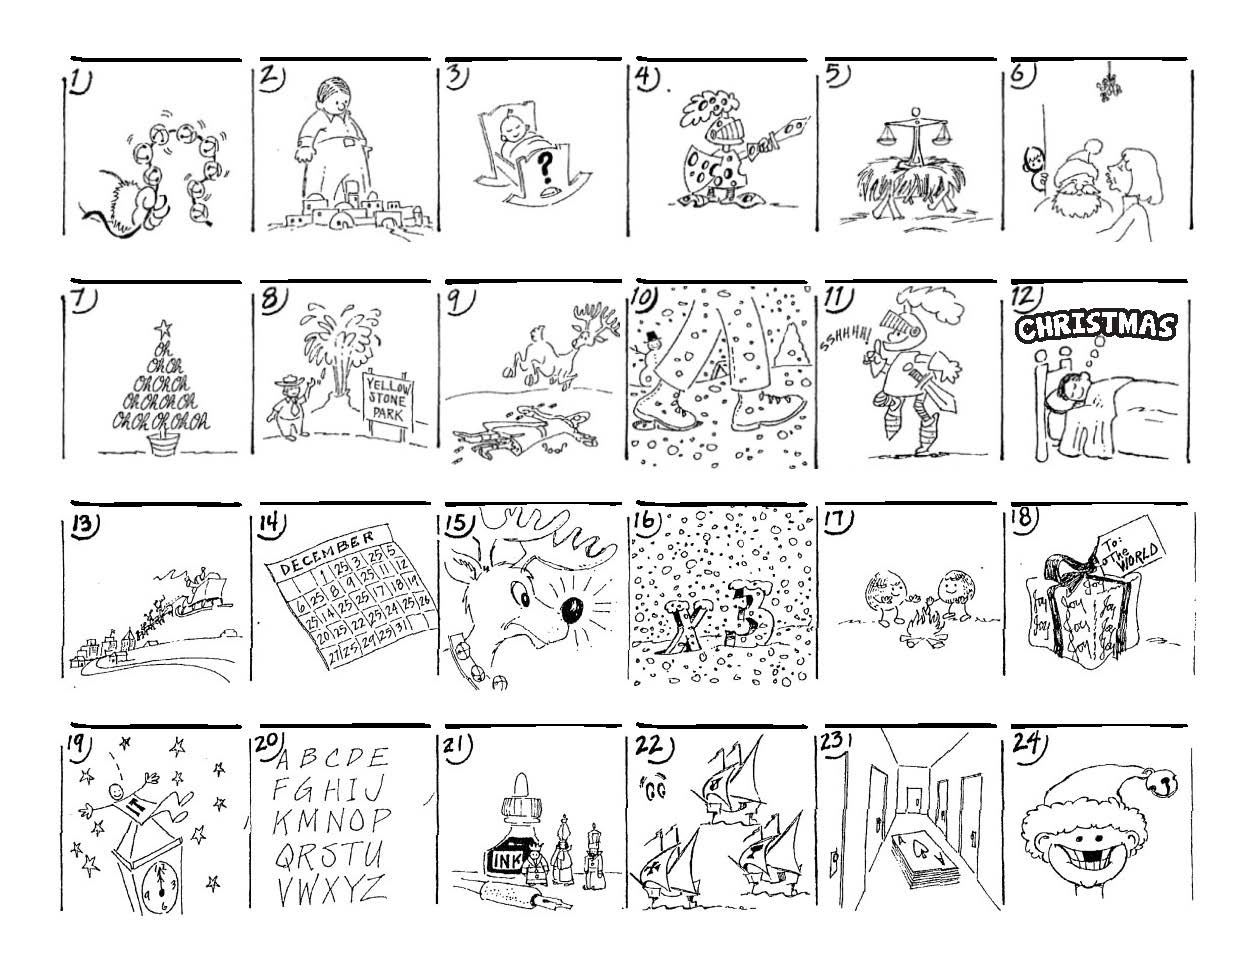 Christmas Carol Puzzles – The Button-Down Mind - Free Printable Holiday Brain Teasers